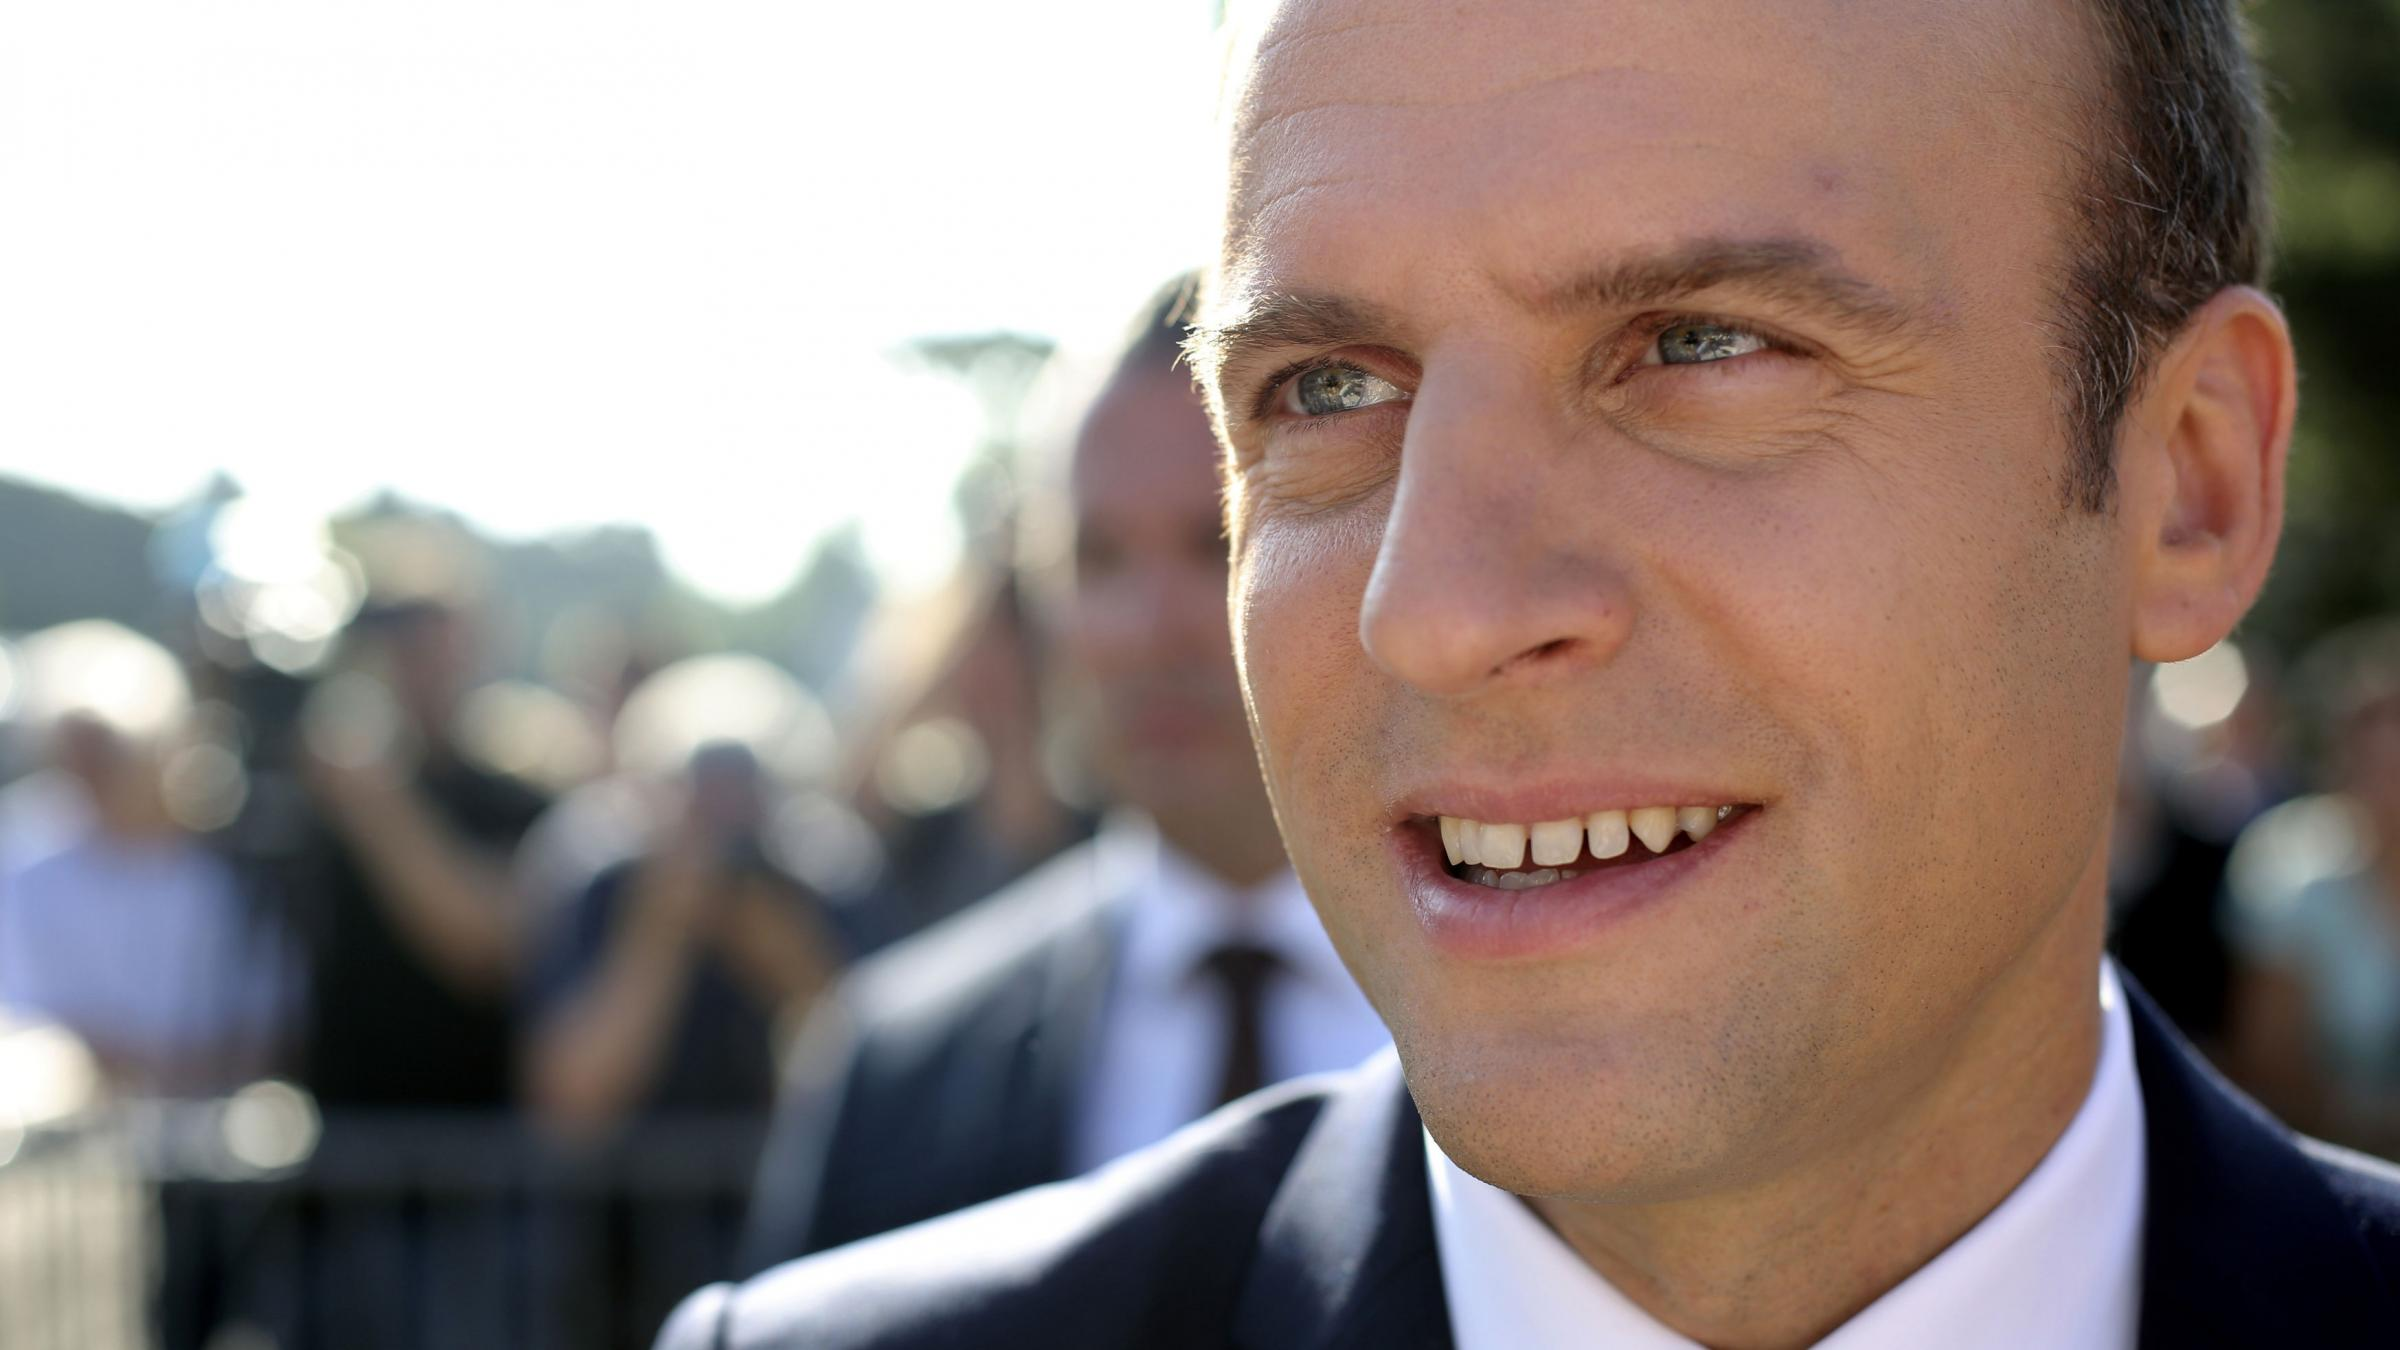 French polls predict Macron's party will secure large majority